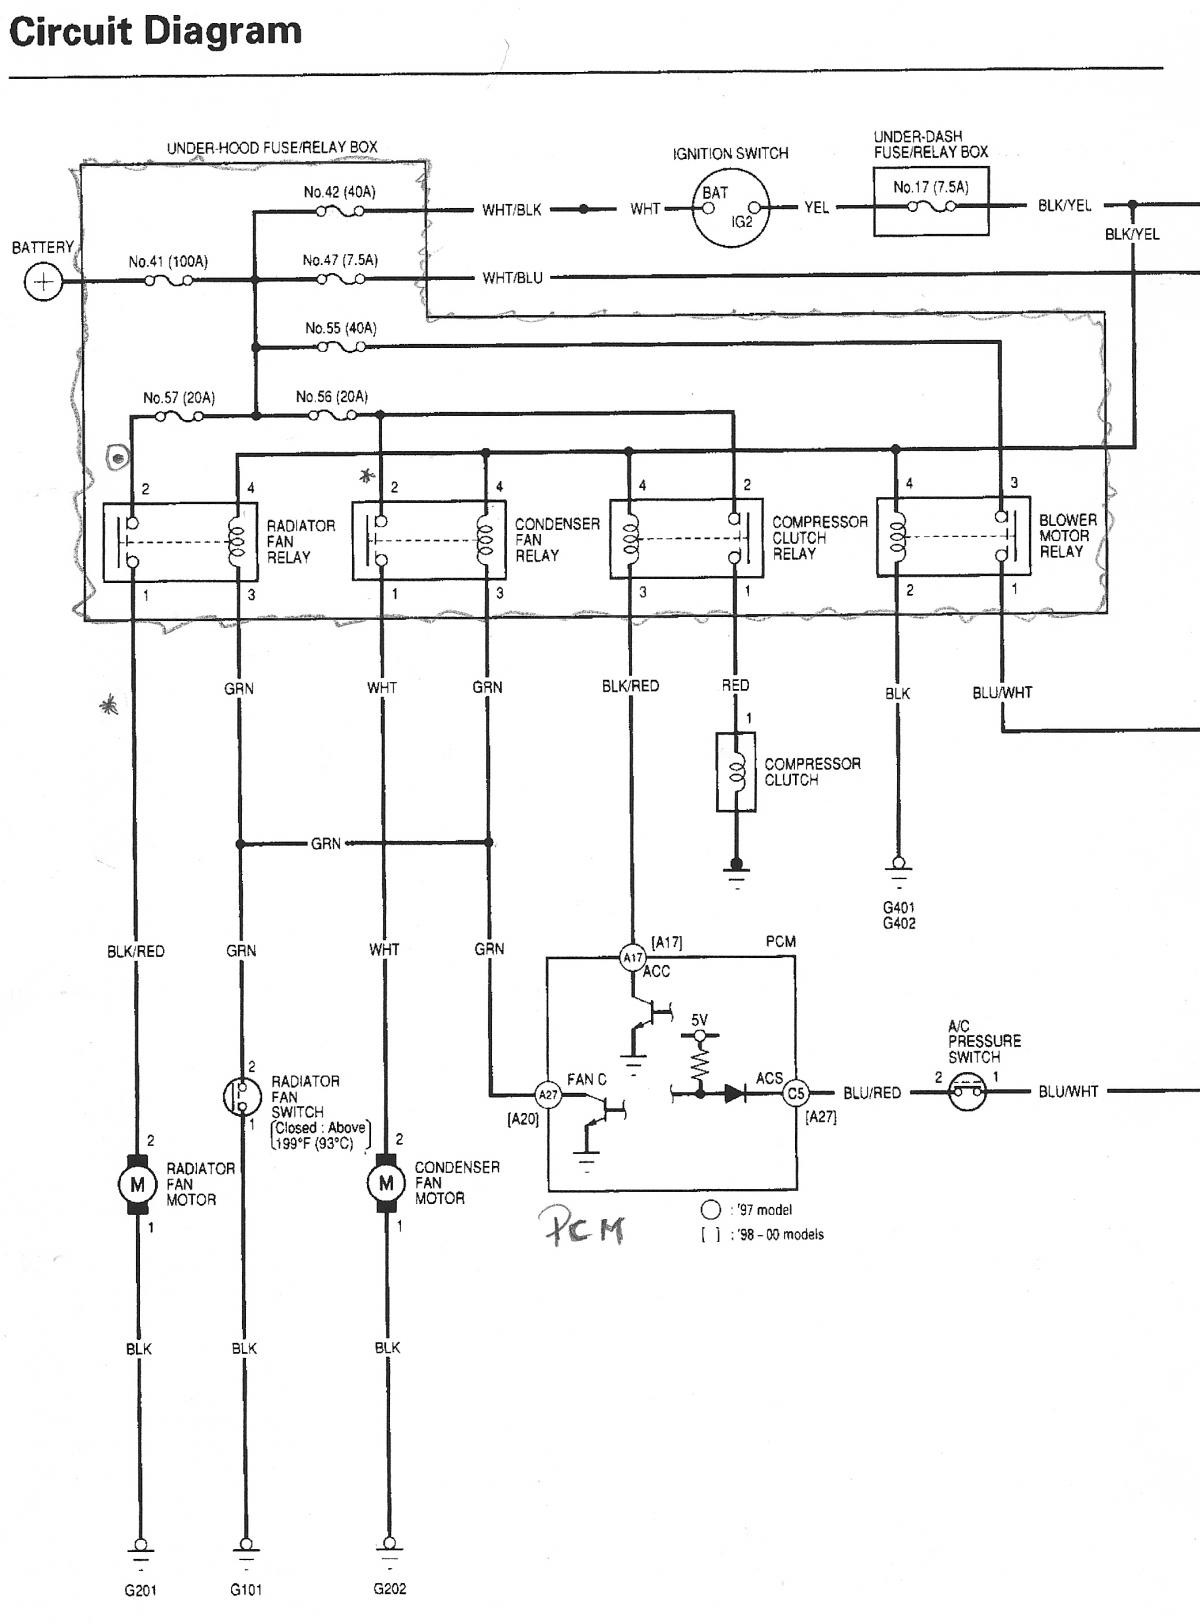 1997 honda accord blower motor wiring diagram wiring diagram rh komagoma co